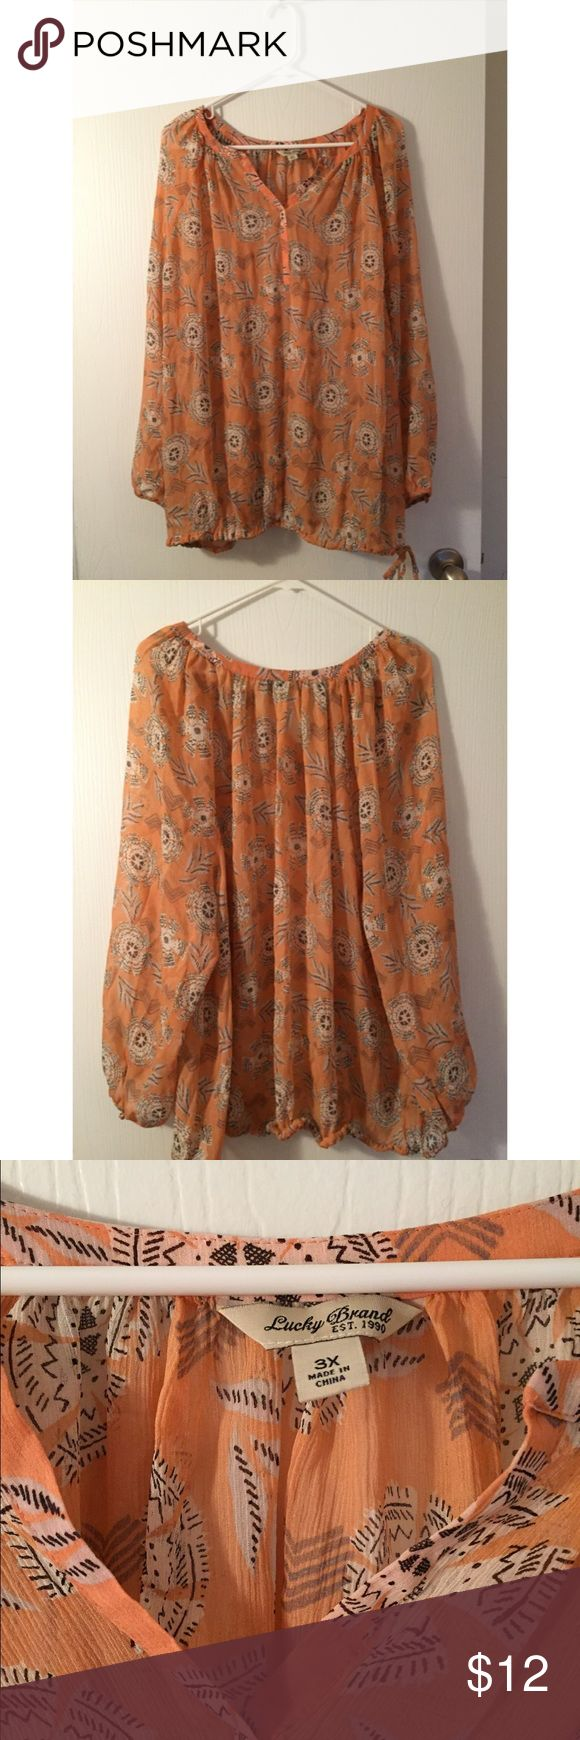 """Lucky Brand Peach Navajo Print Blouse 3X Semi sheer peach blouse with floral Navajo print. Armpit to armpit measures 30"""". Top of shoulder to bottom of shirt is 30.5"""". Really good condition. No stains. Lucky Brand Tops Blouses"""